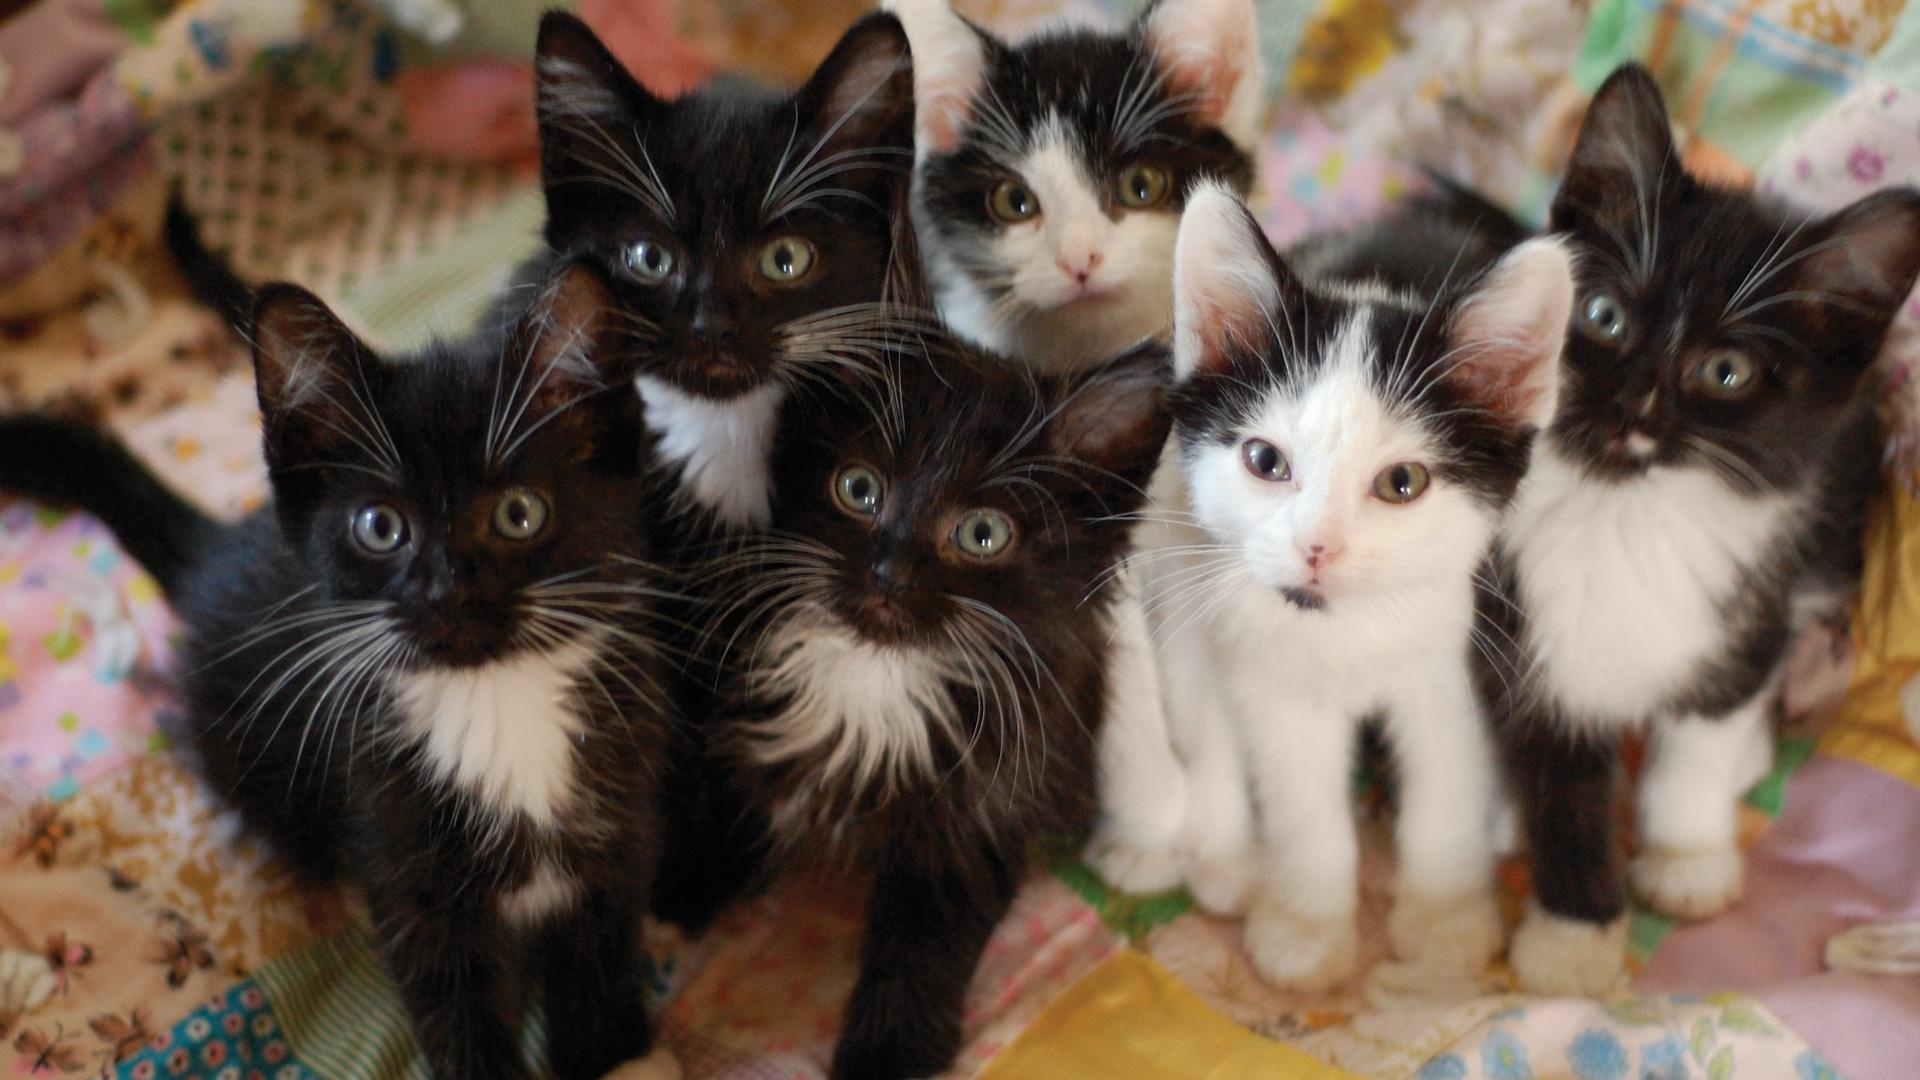 kittens cat many abandoned animals litters area getty birth sheknows cinotto laurie shelter bay moment pets